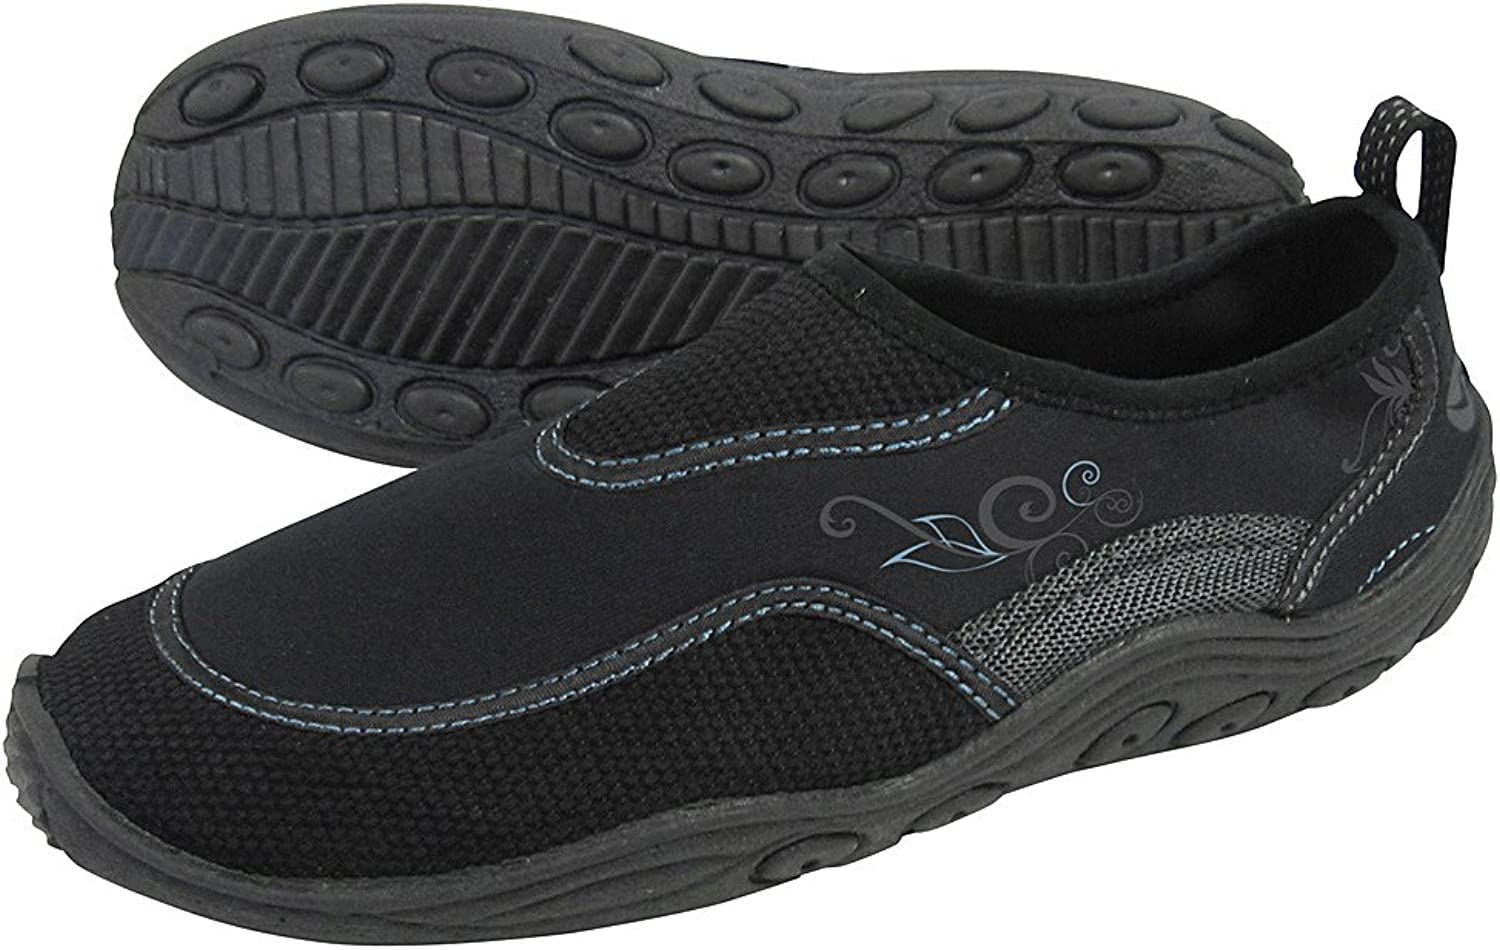 Aqua Lung Sport Womens Size 7 Seaboard Watershoe  Great for all Watersports